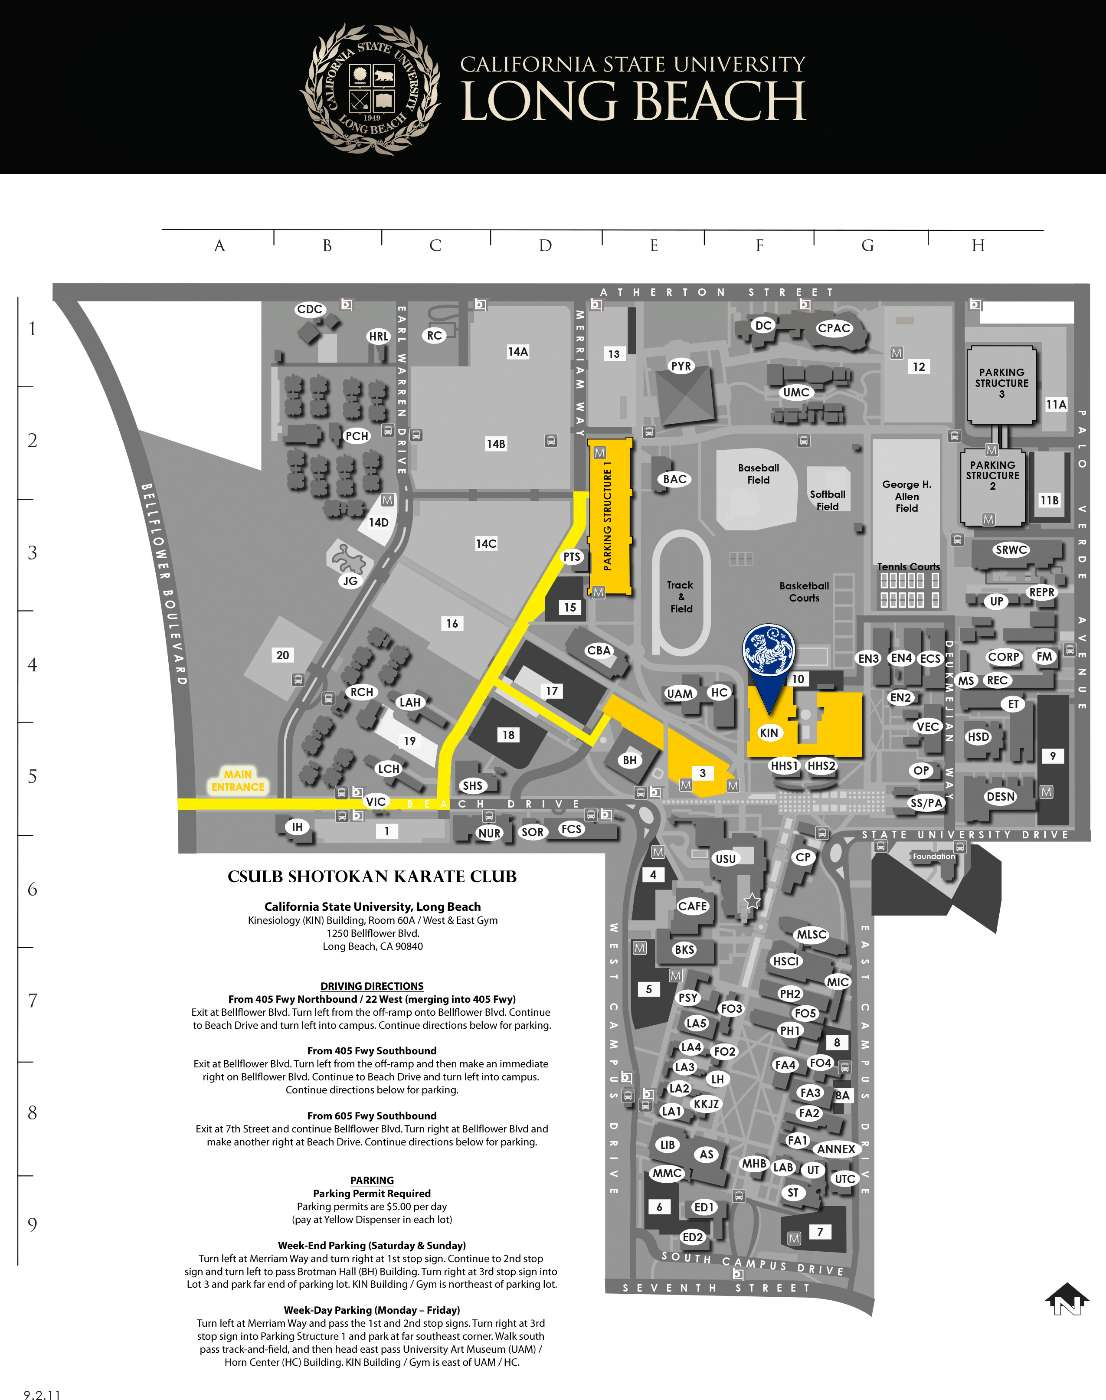 csulb campus map 2014 with Map Directions on Chapters in addition Csula C us Map besides Printable Temple C us Map further Csulb Parking Map in addition Nyc Bike Map Bike Lane Map Also Ocean Parkway Bike Path Map Bicycle Lane Map Nyc Bike Map App.